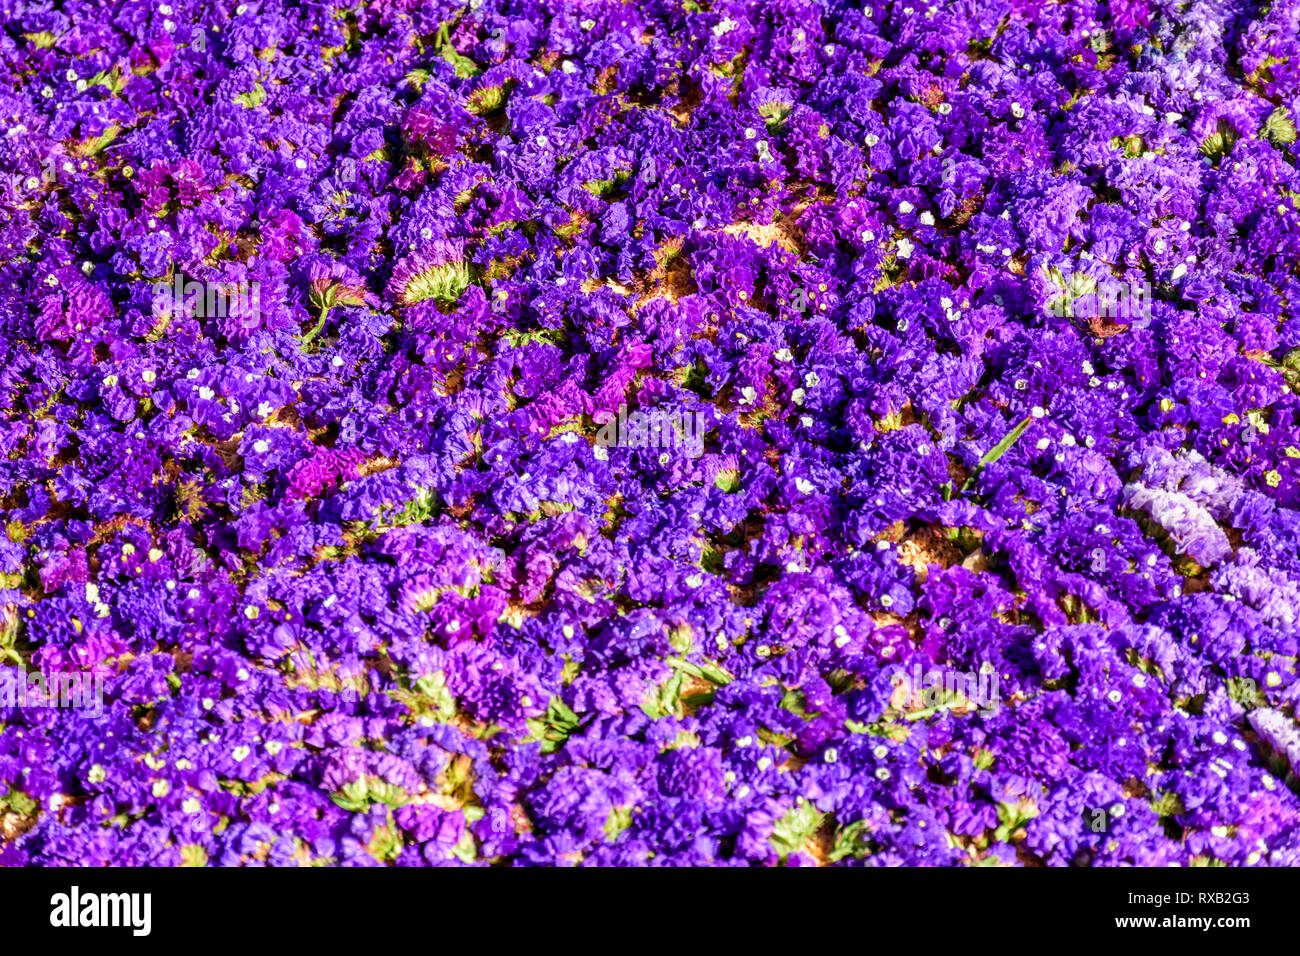 Closeup of statice flowers on Lent procession carpet in town with most famous Holy Week celebrations in Latin America - Stock Image